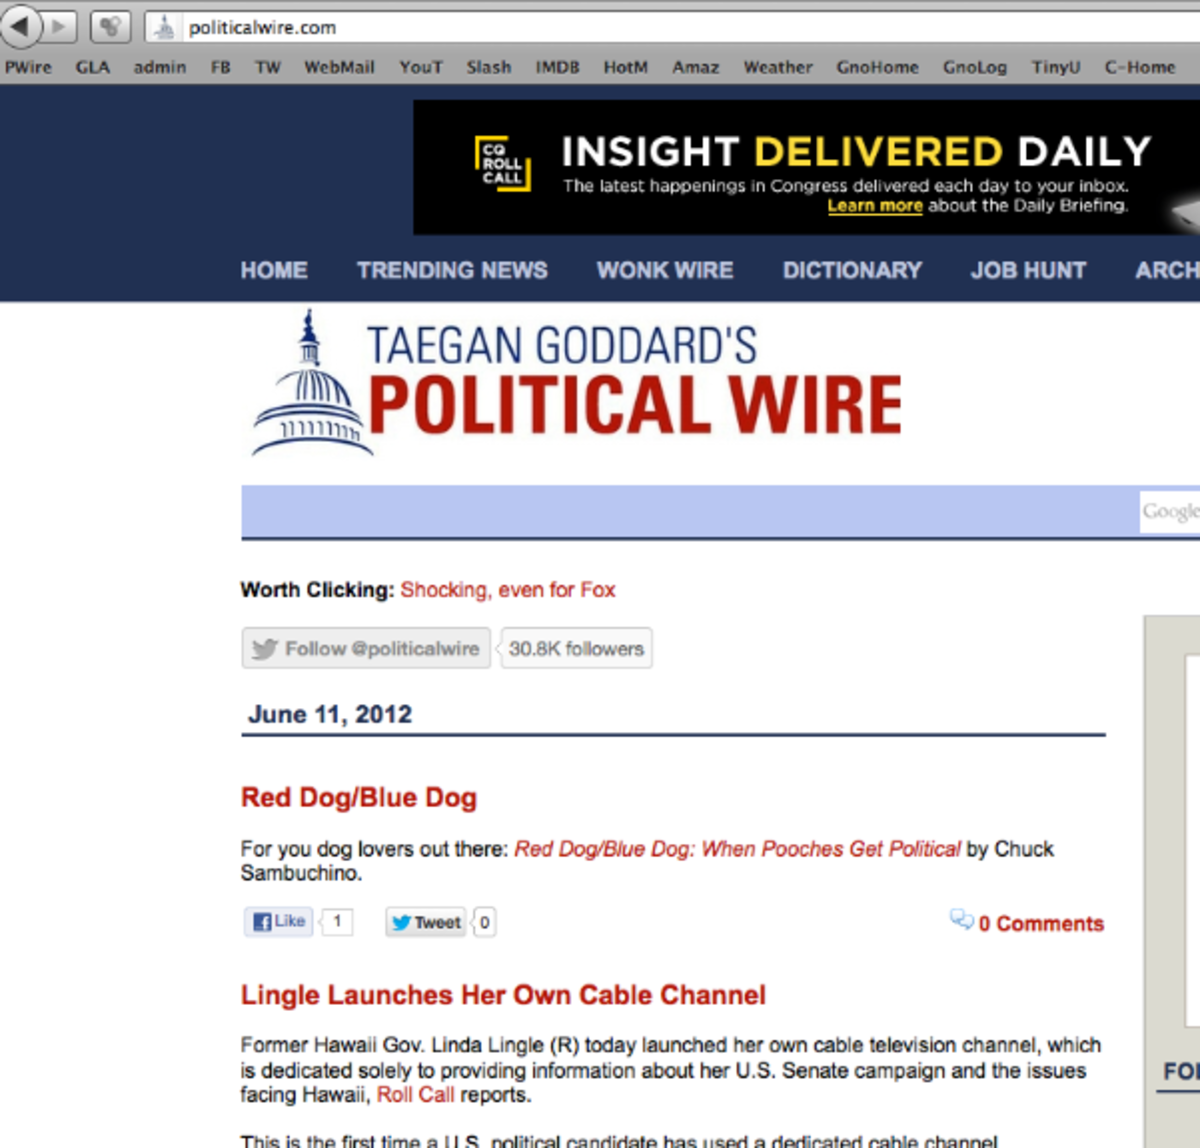 Was so pumped to see this. Political Wire is probably the first site I read in the morning after checking my e-mail.